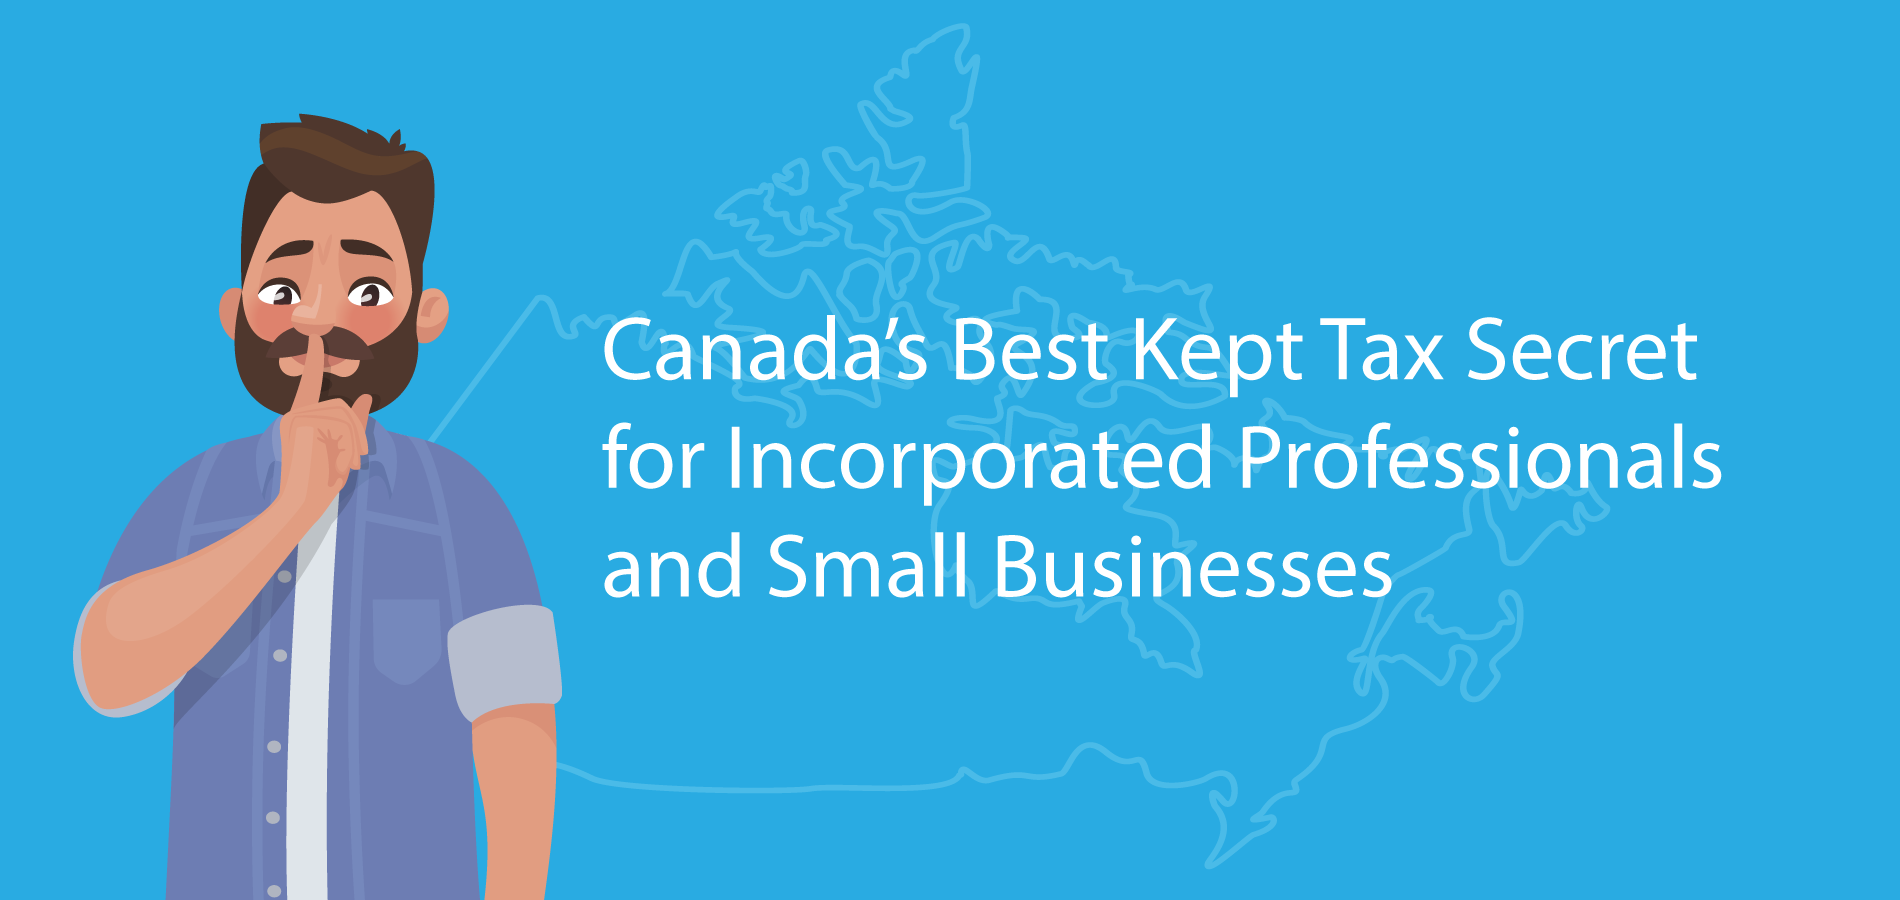 canadas best kept tax secret for incorporated professionals and small businesses